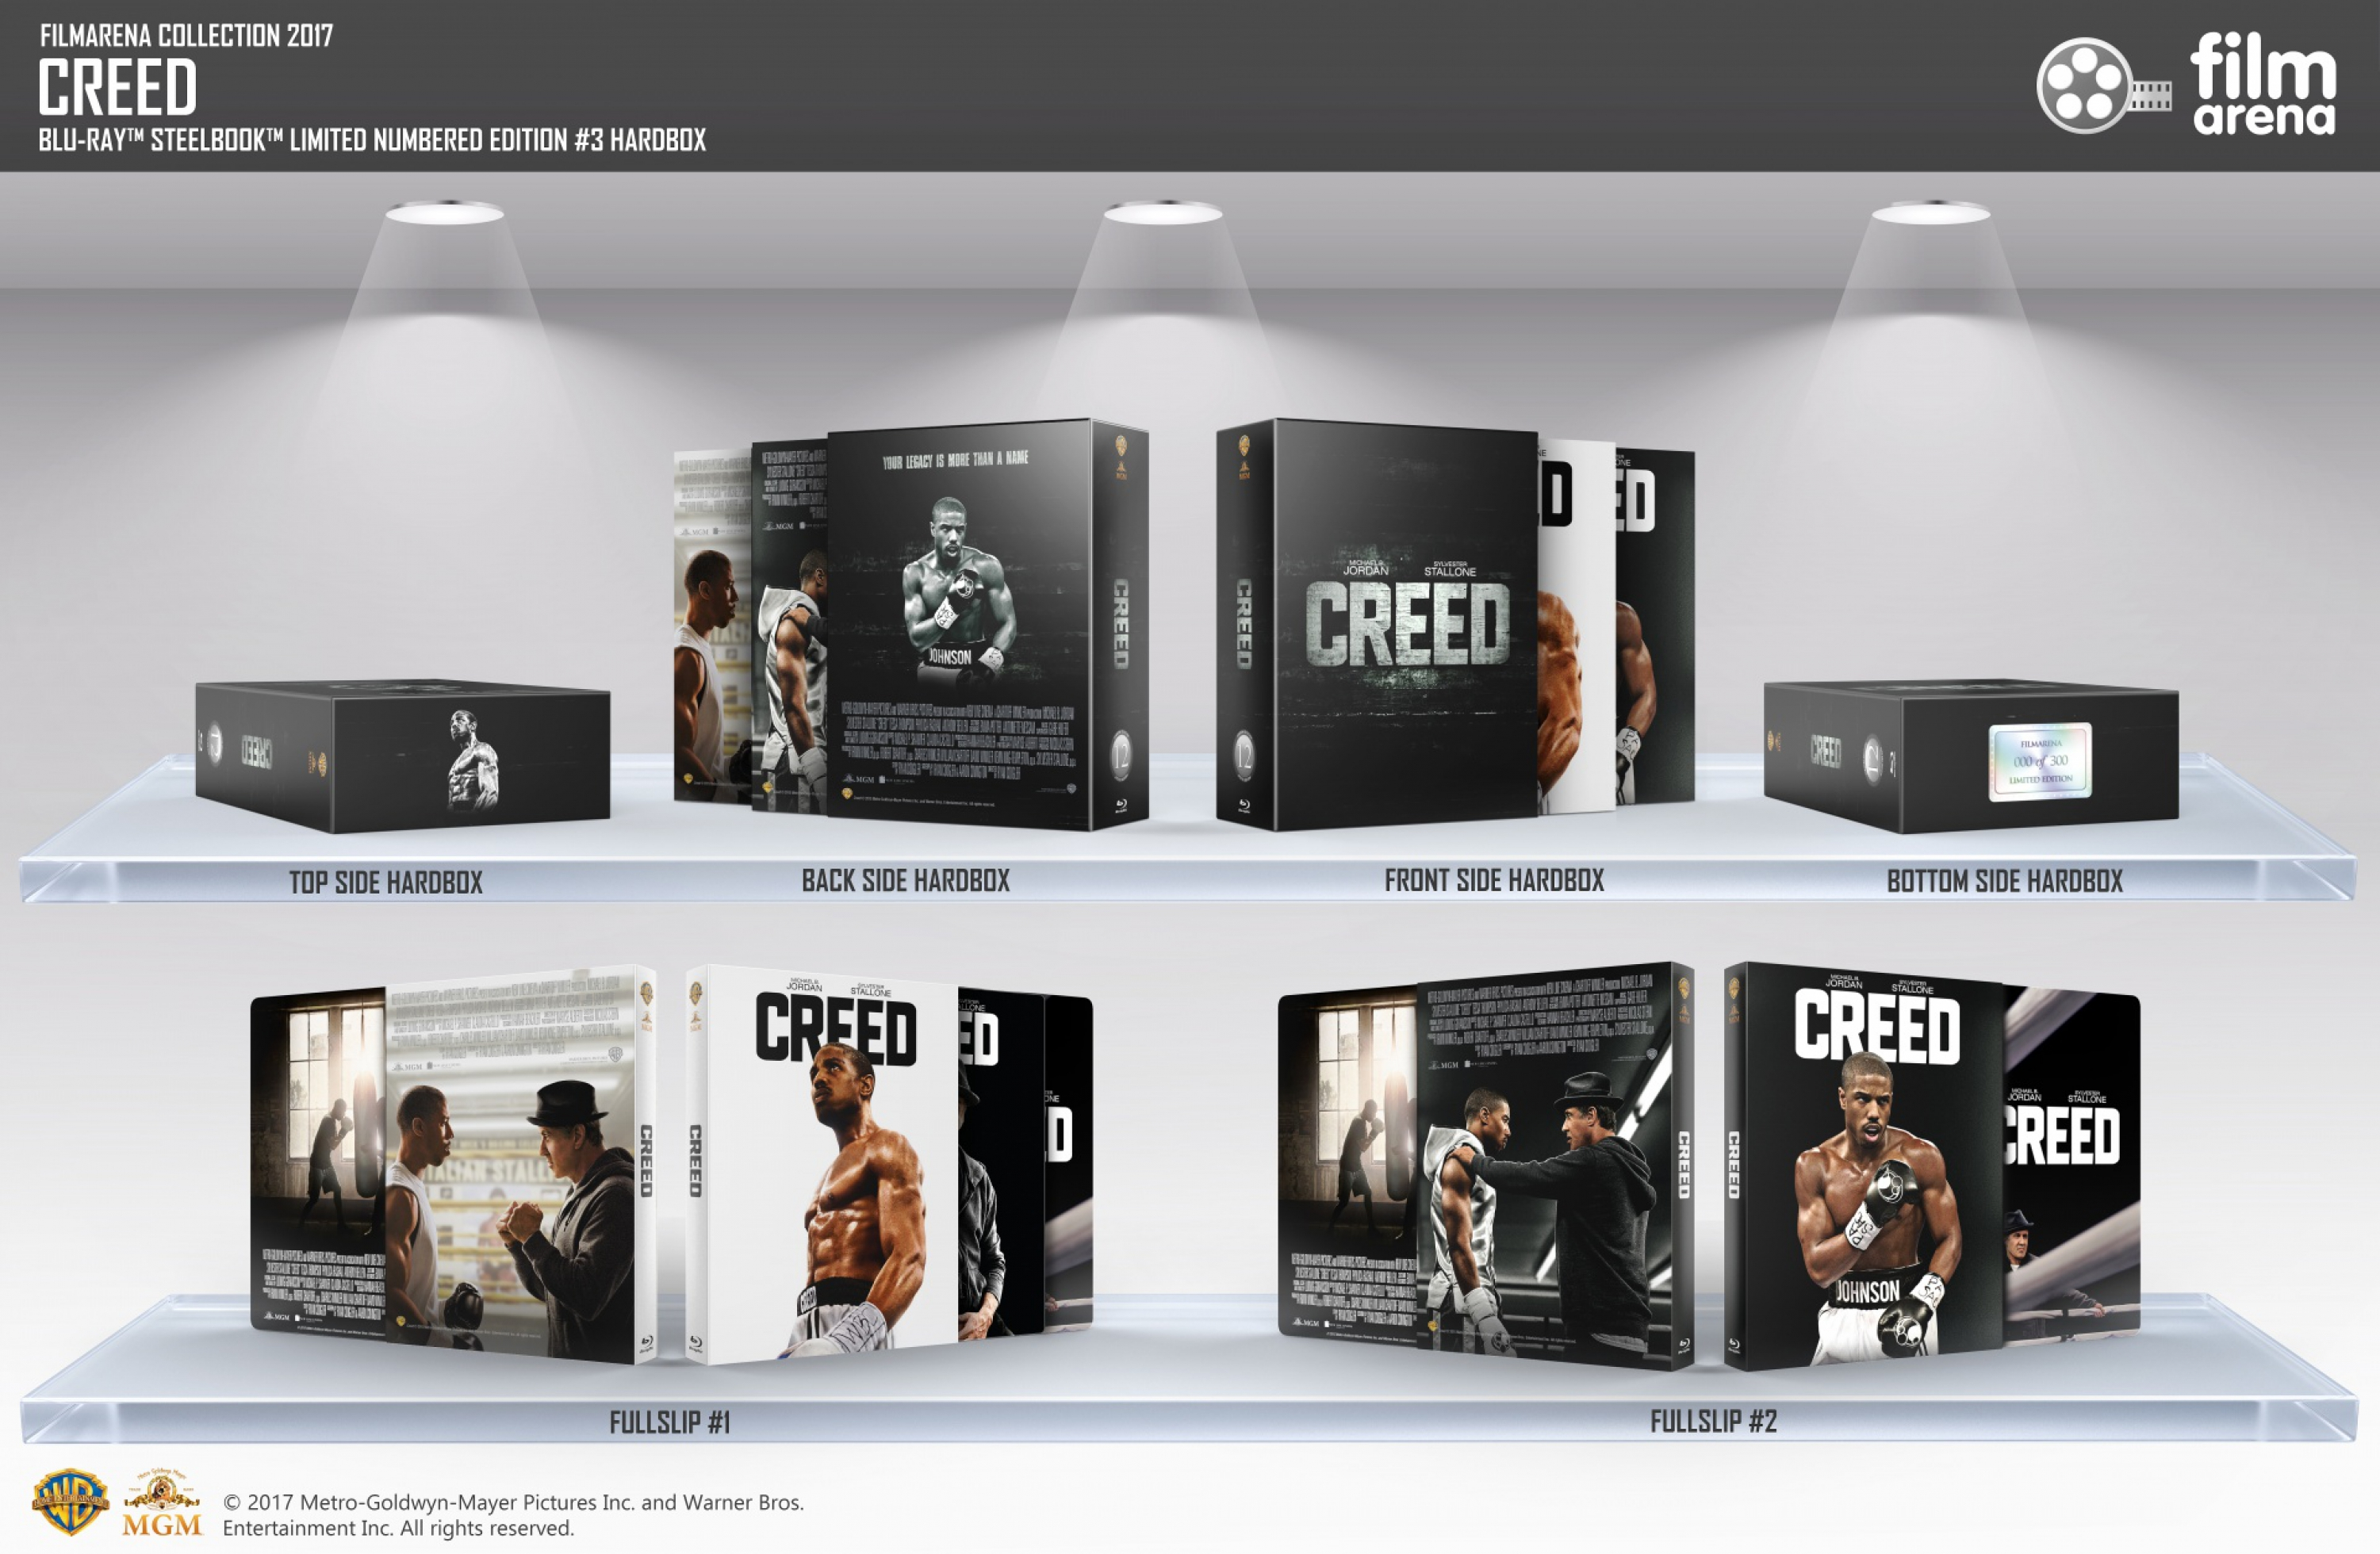 Creed HD-Filmportal Edition 3 FAC